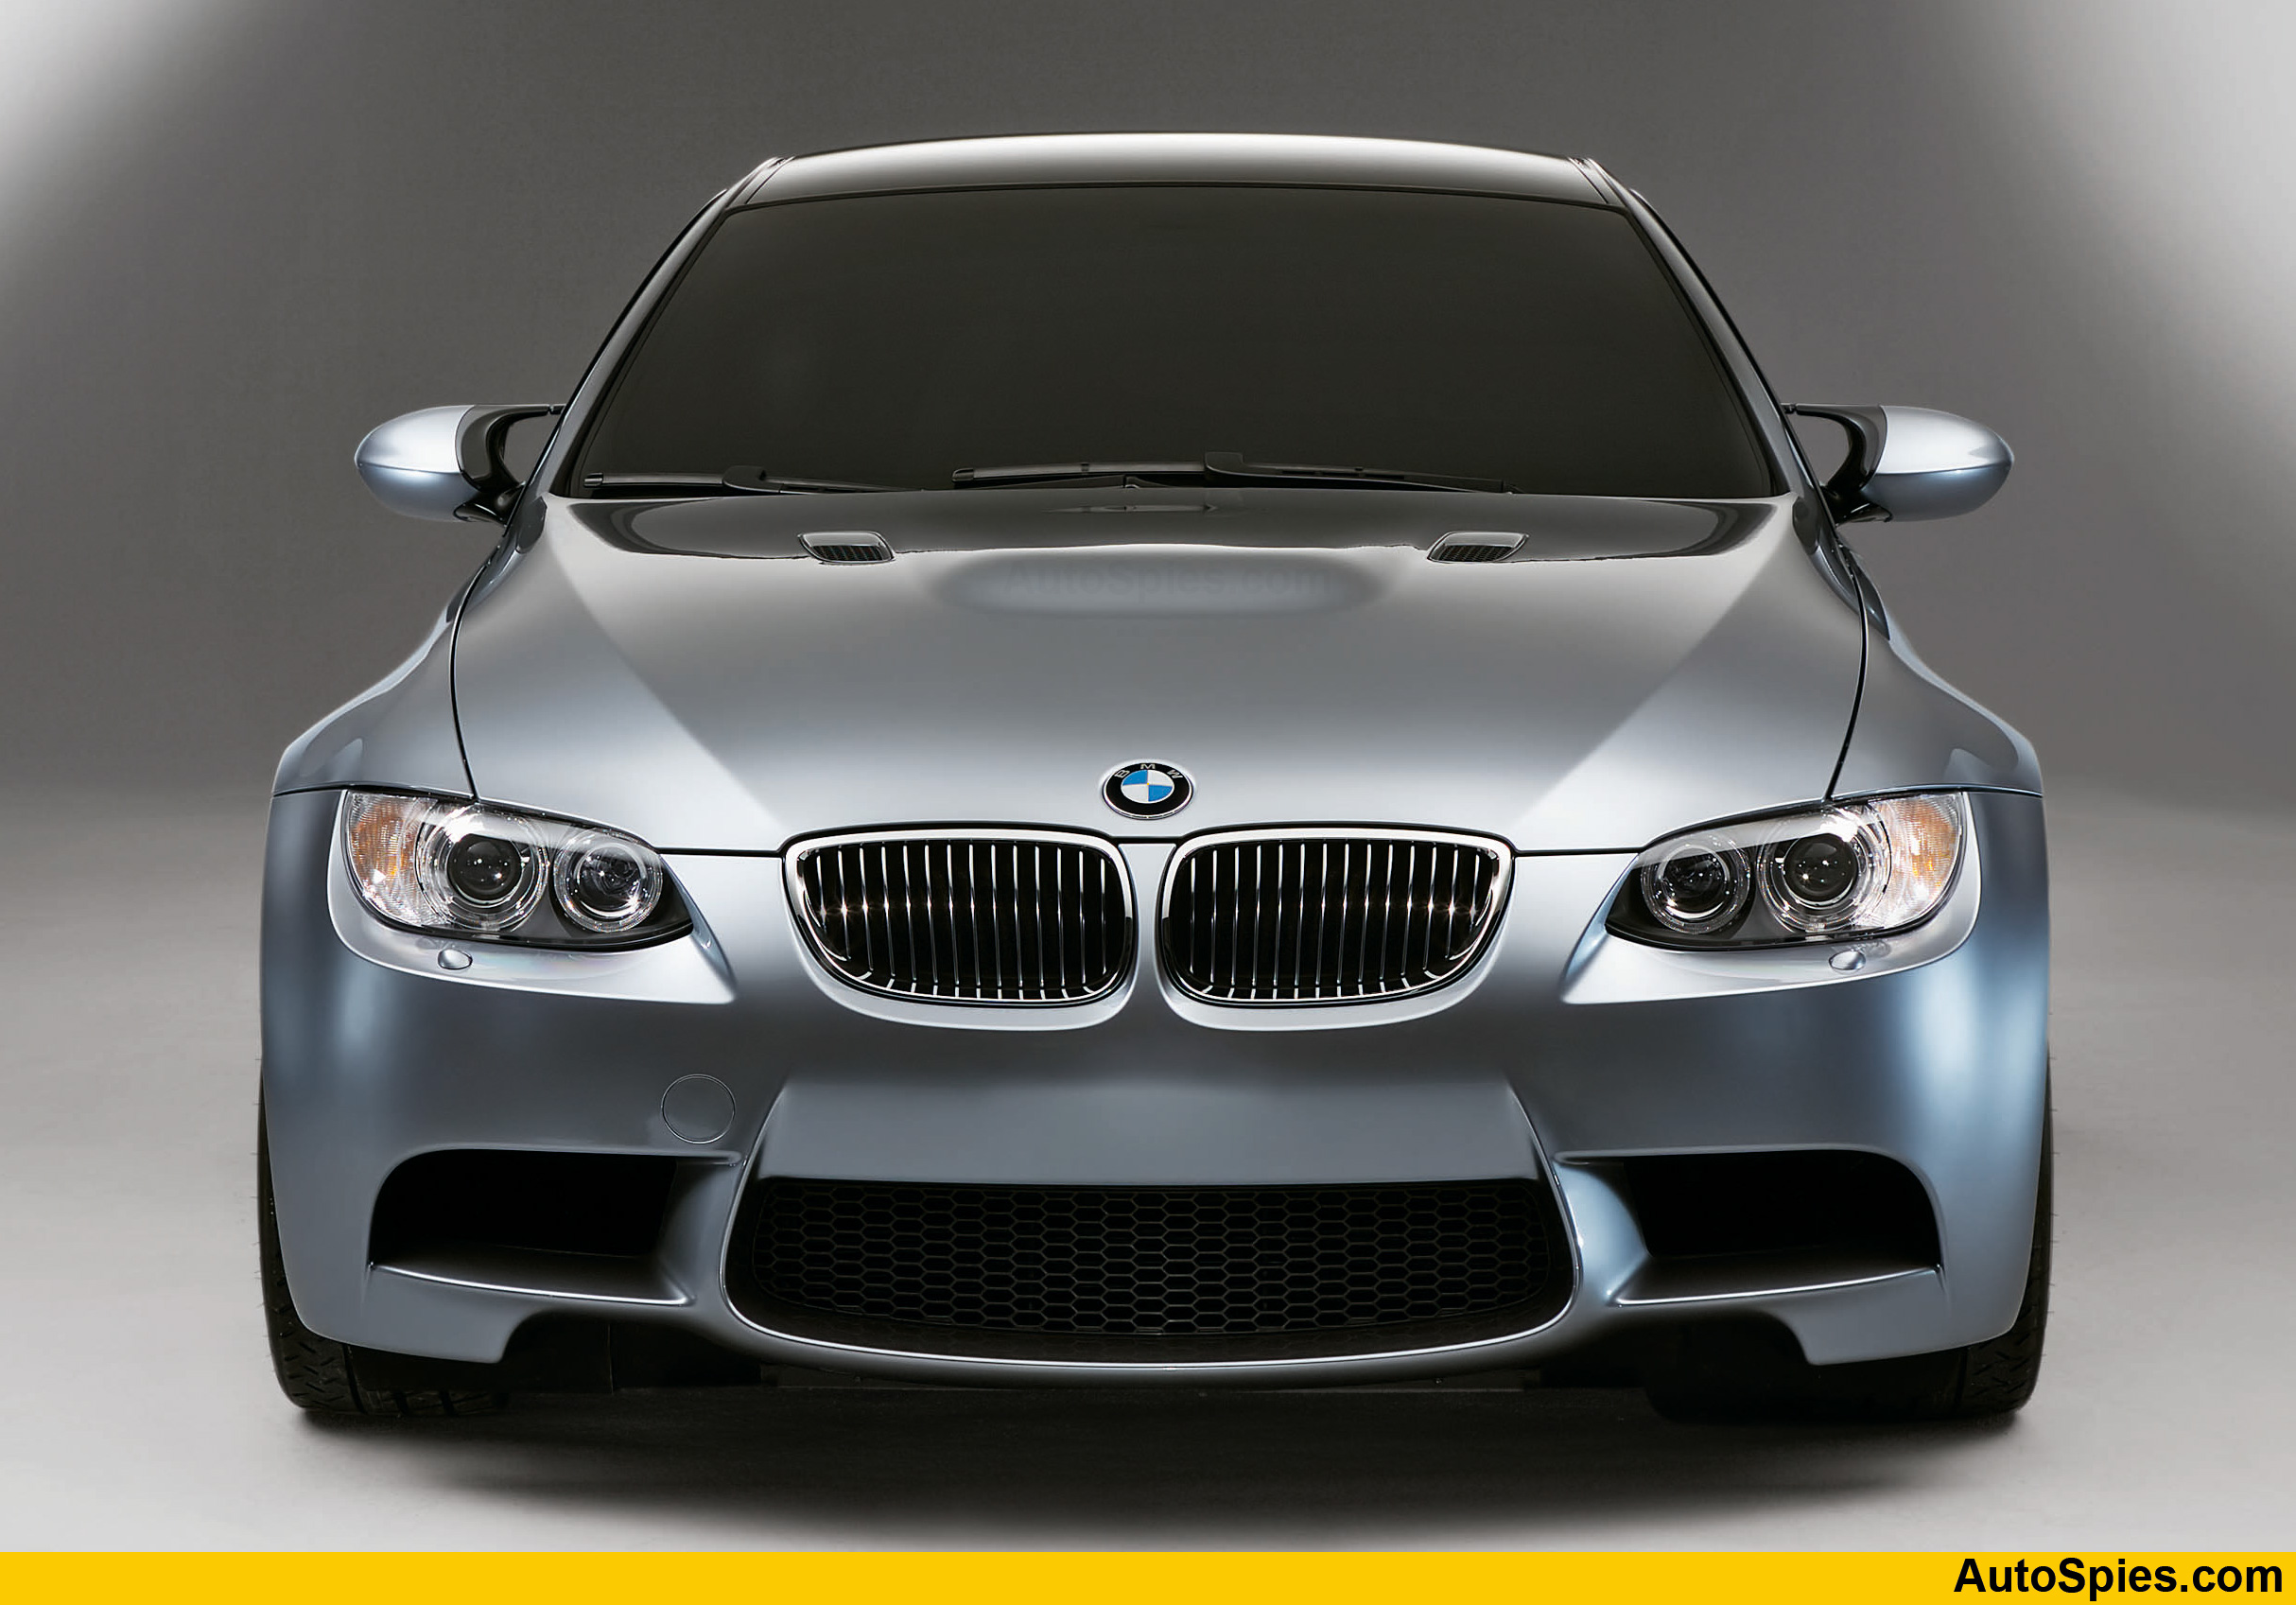 Top 10 most affordable luxury cars autospies auto news - Medium Photo Large Photo 2008 Bmw